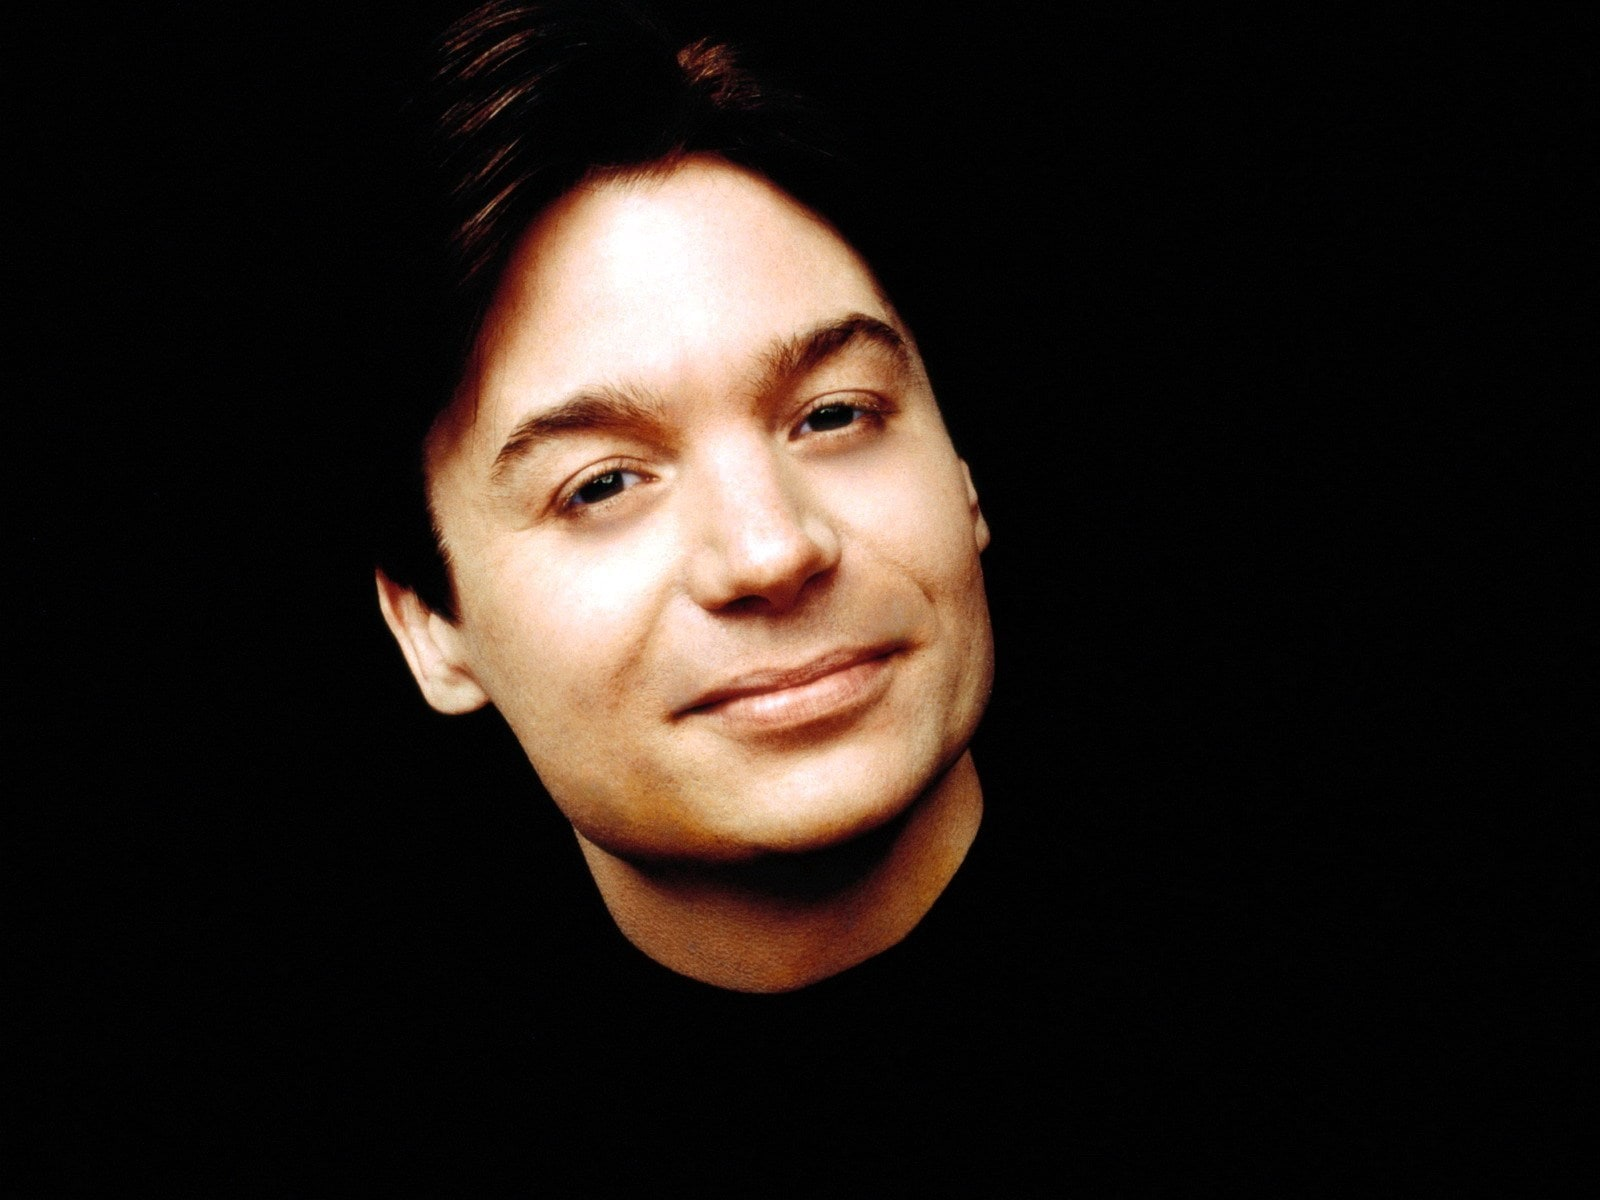 Mike Myers HQ wallpapers